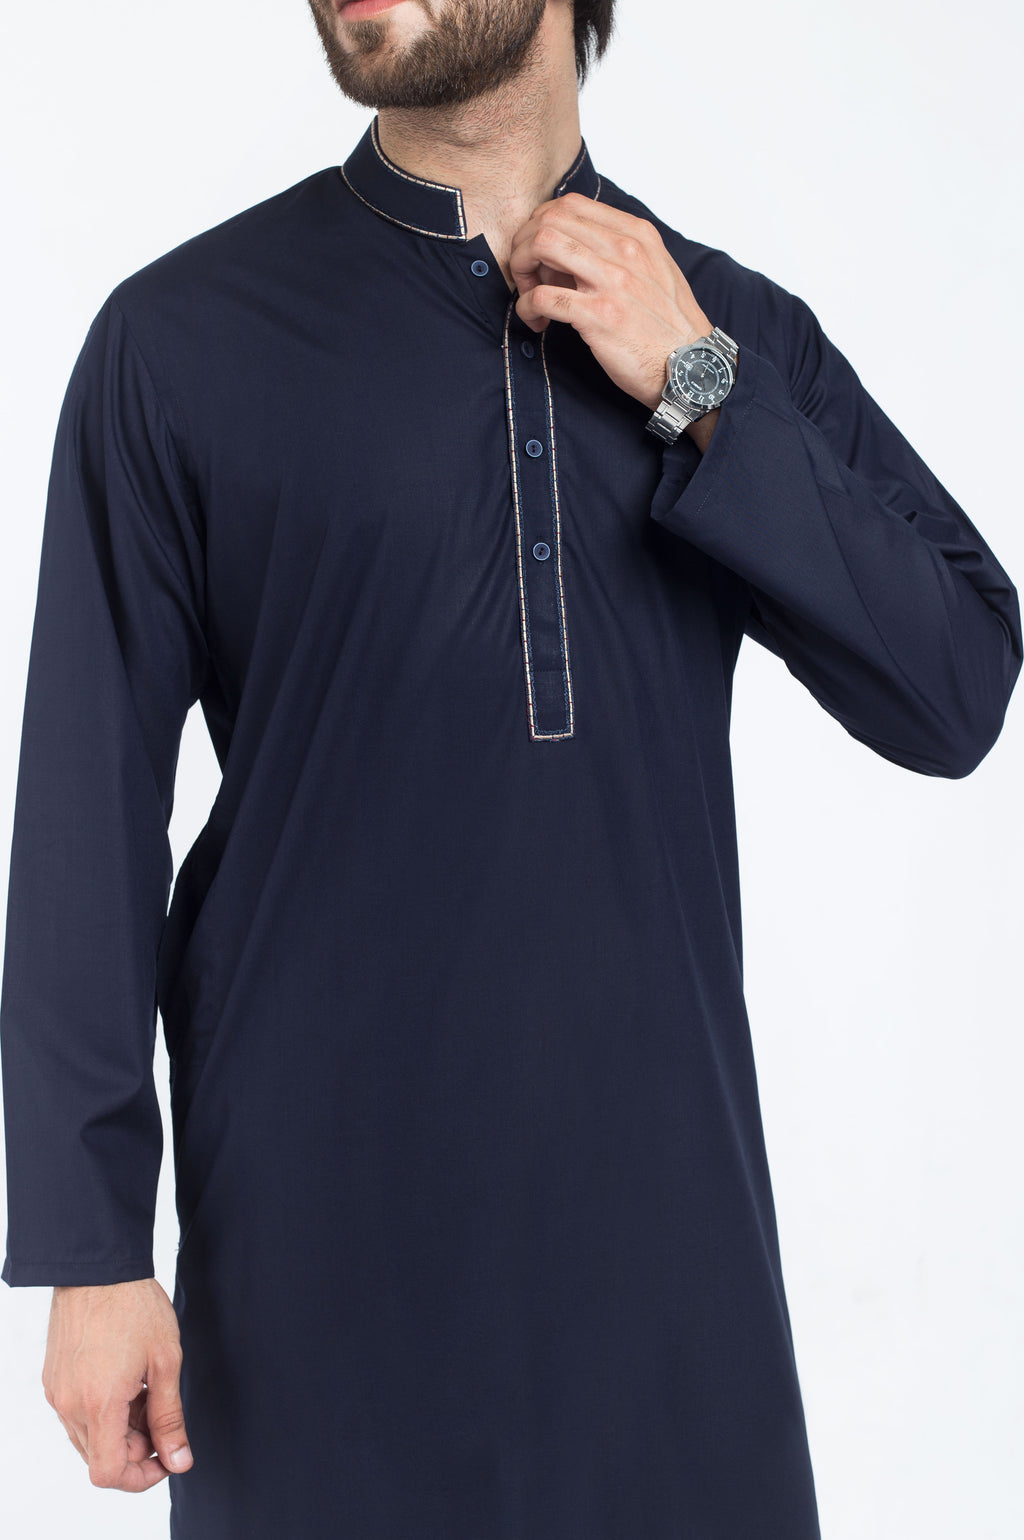 Image of Men Men Shalwar Qameez Dark Blue Shalwar Qameez Suit. RQ-39216